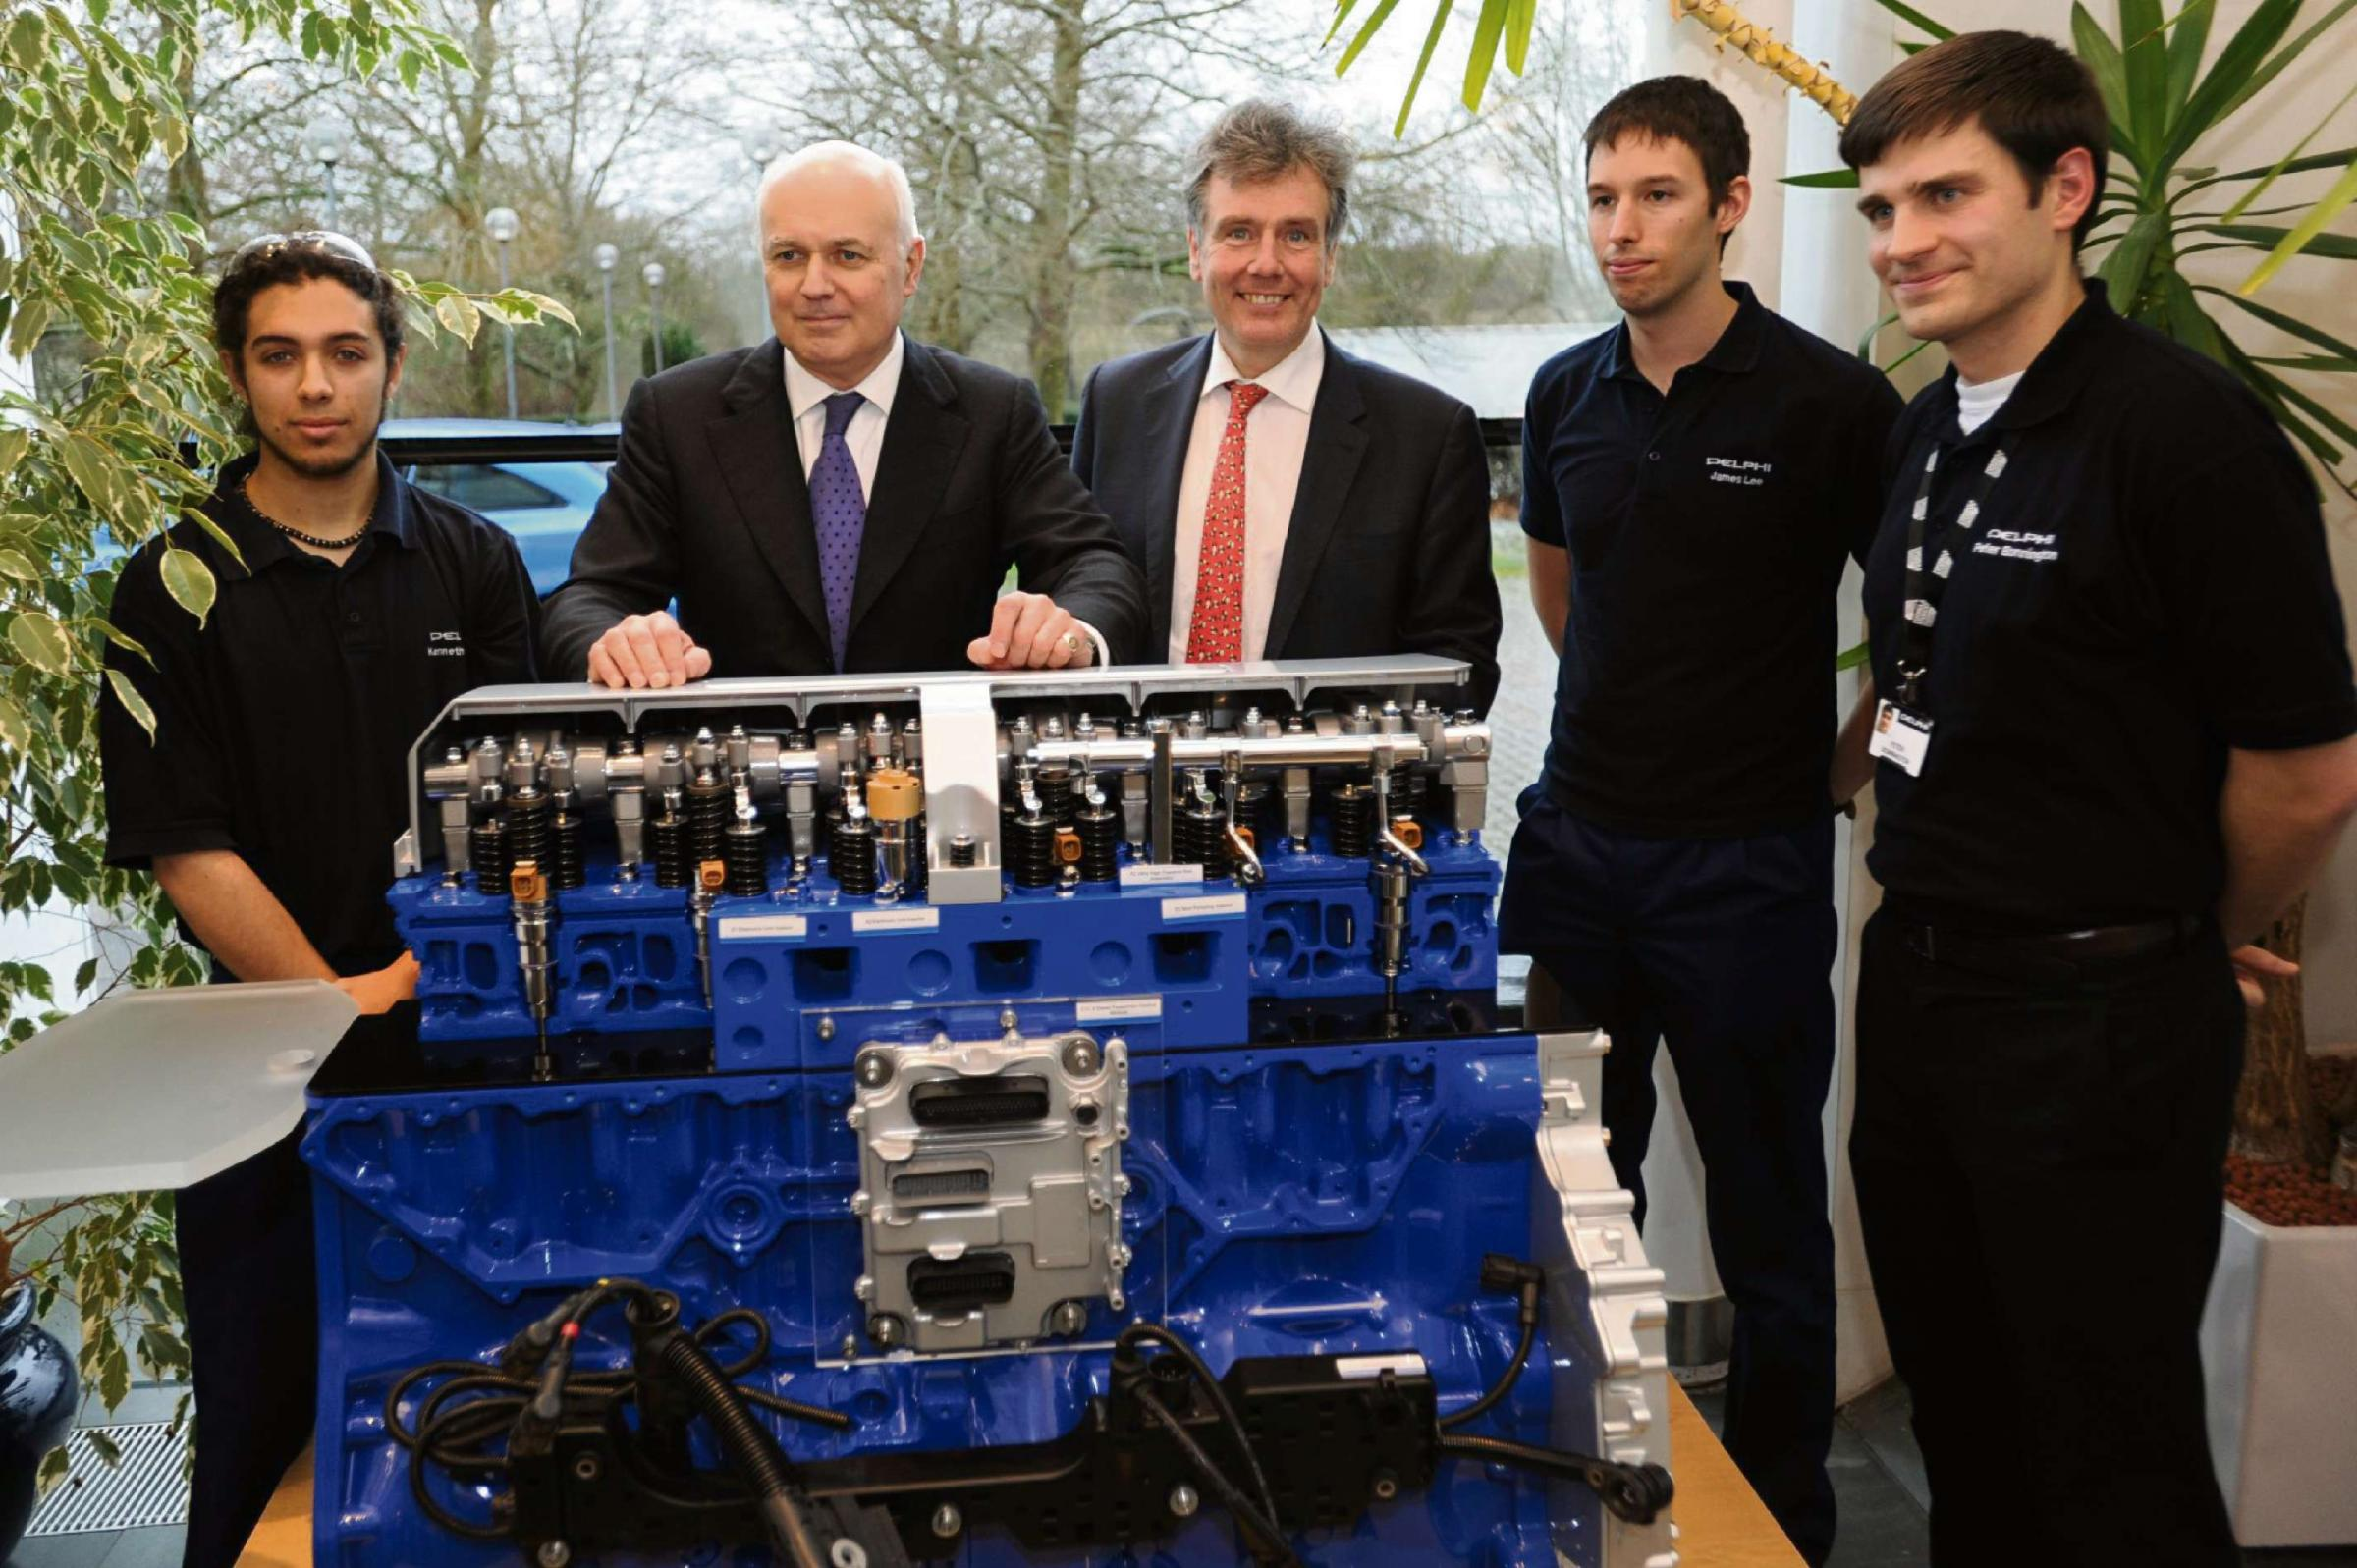 Former Tory leader Iain Duncan Smith visits Five Valley's engineering firm